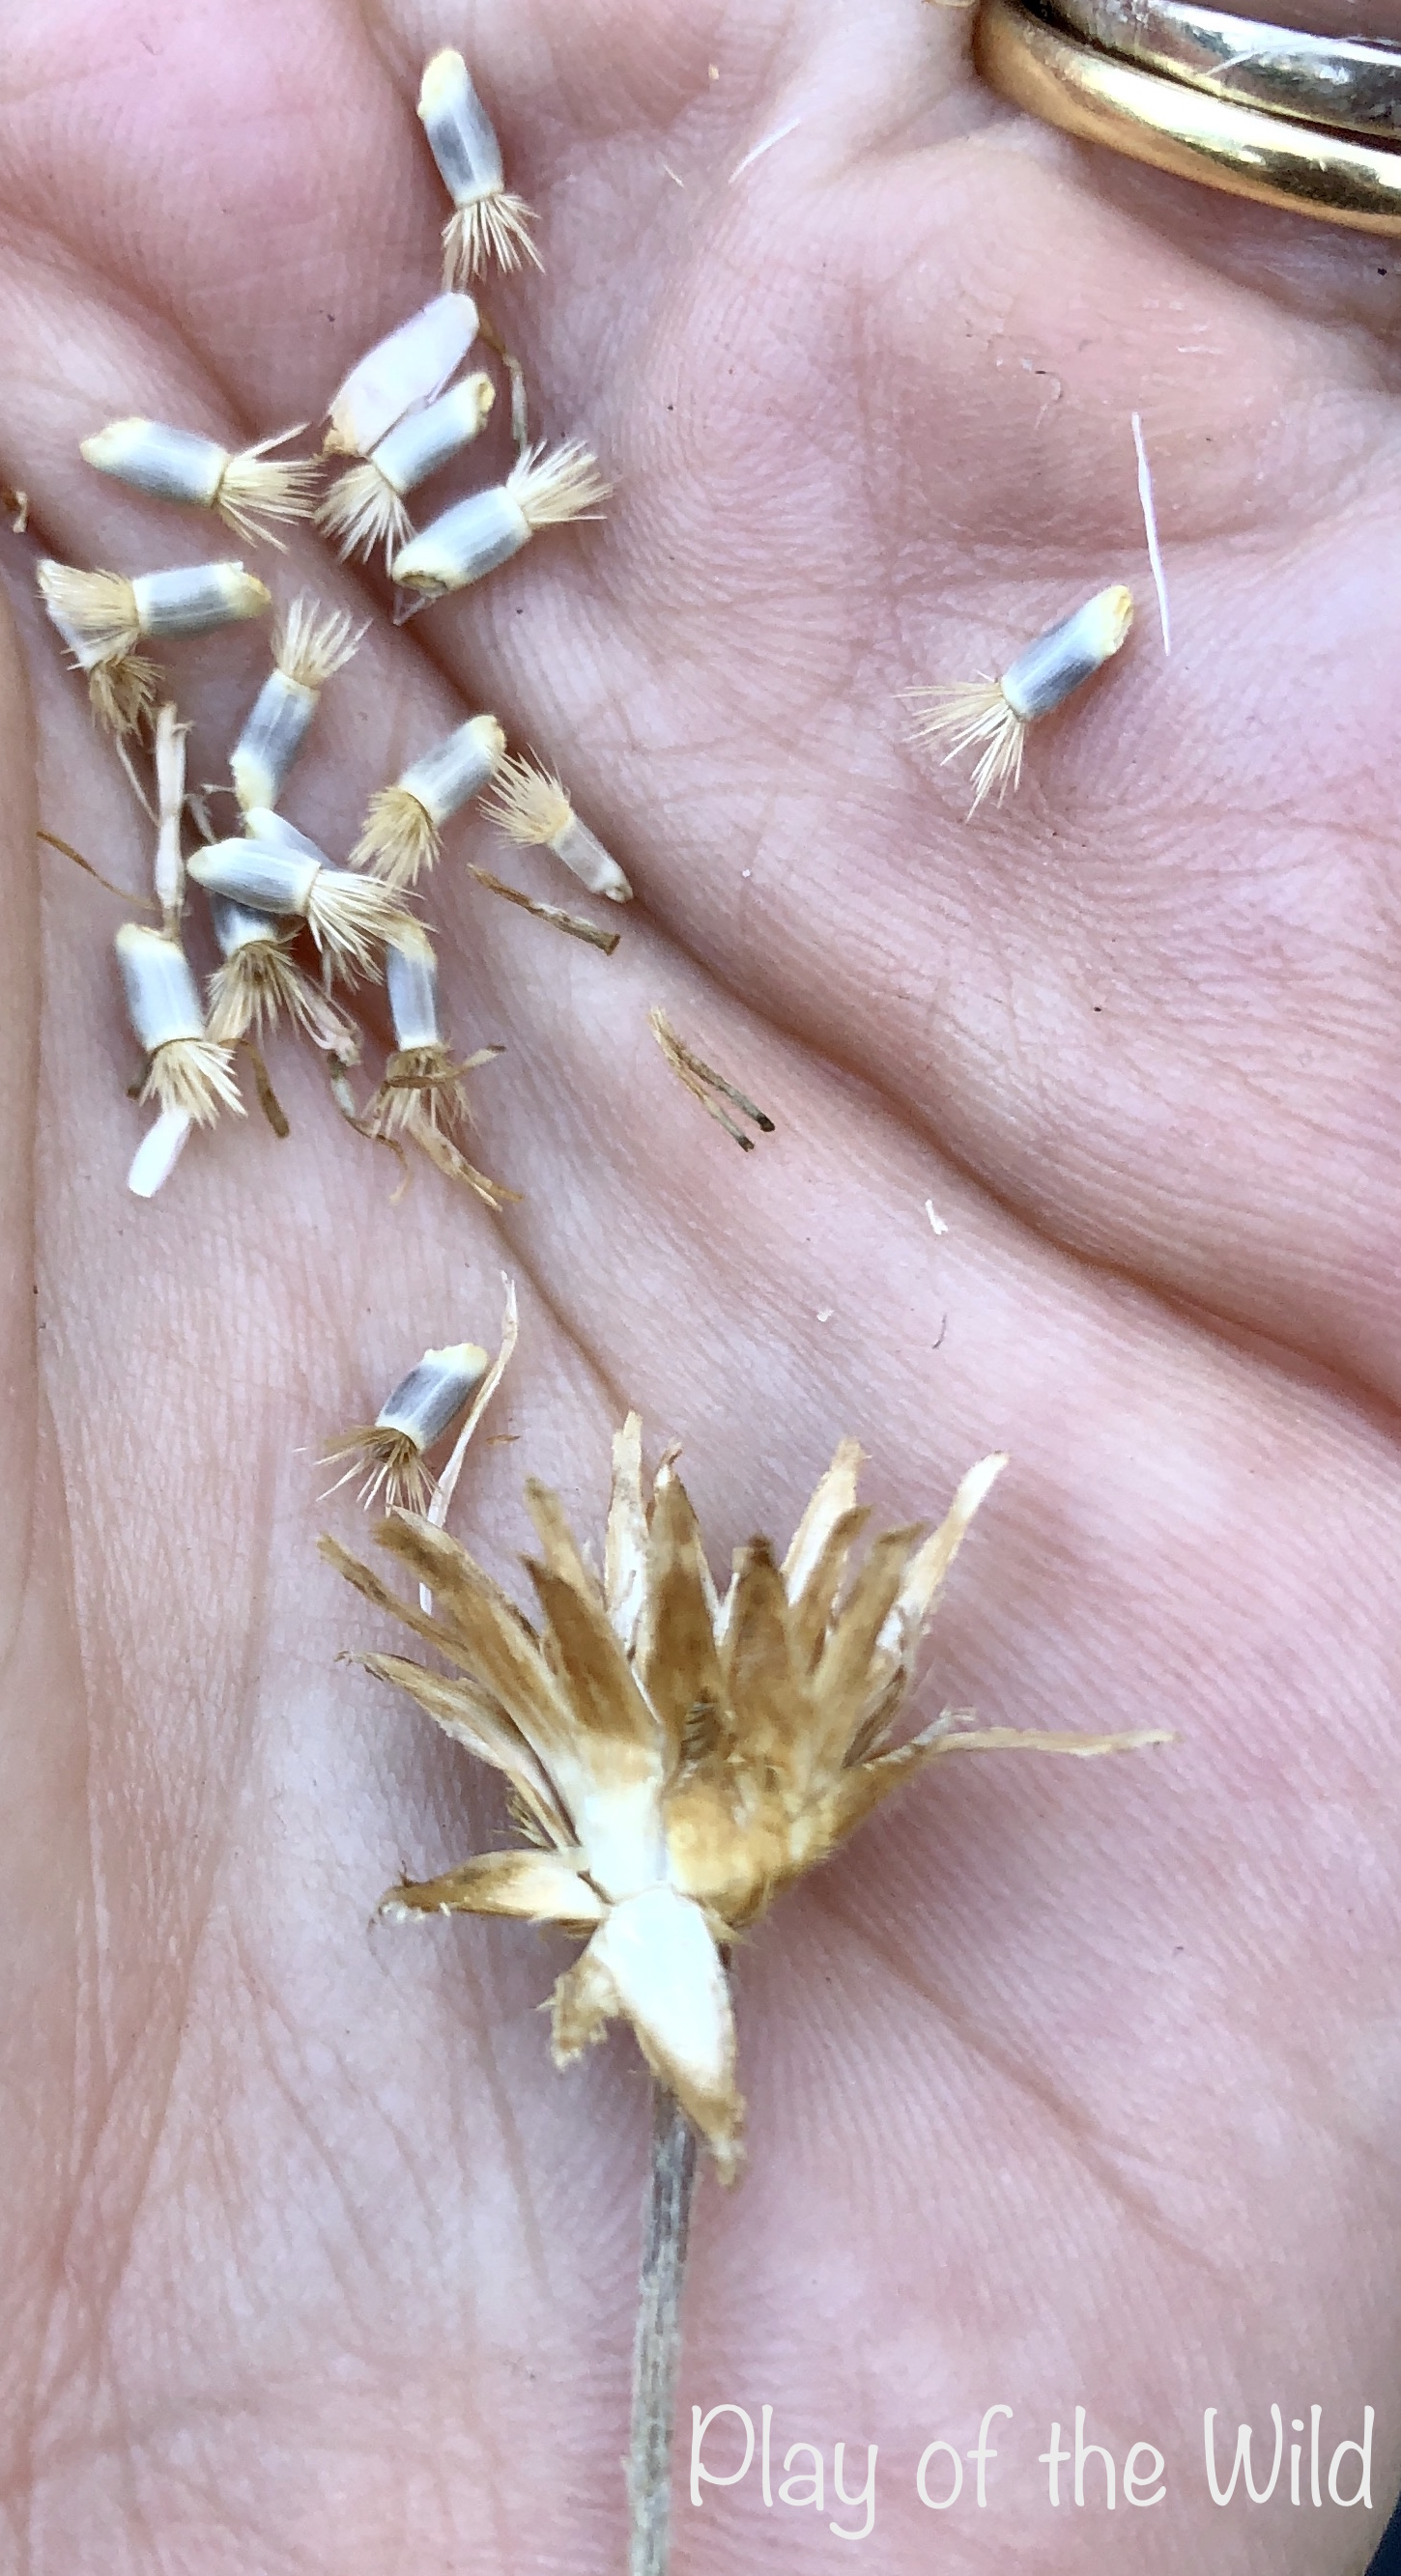 Collecting cornflower seeds from flowers.